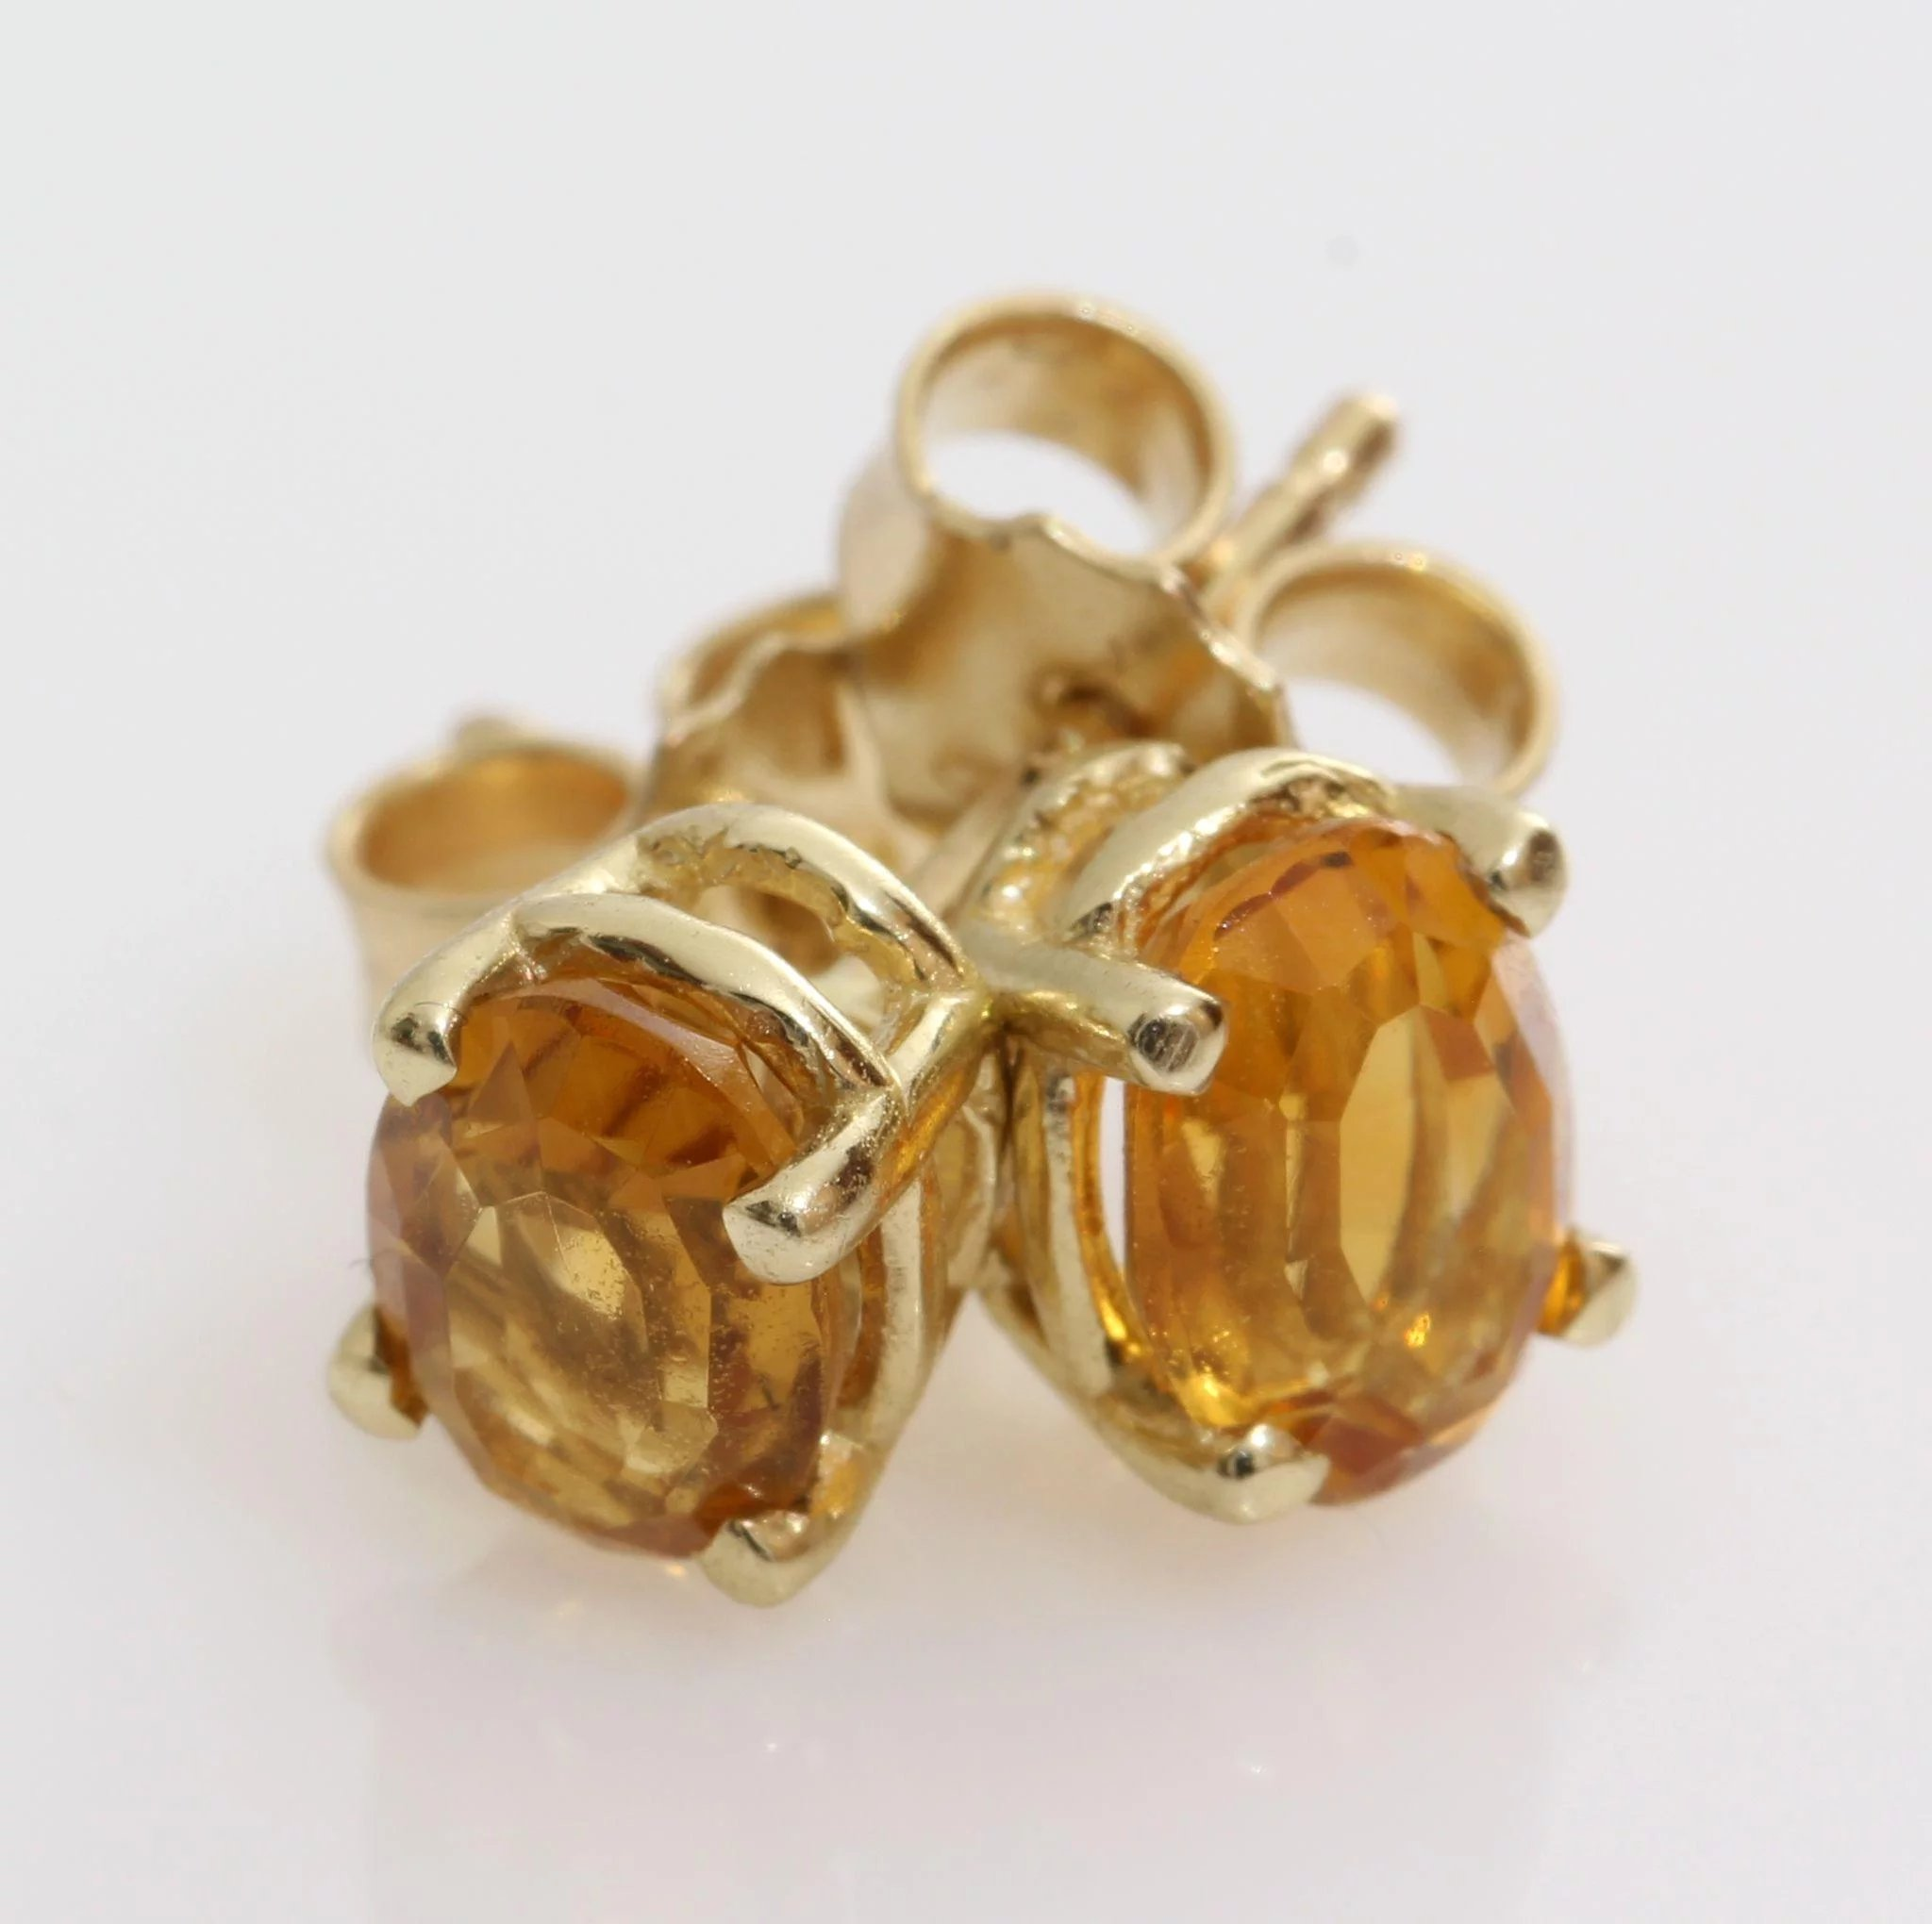 Yellow Topaz Stud Earrings Image Of Earring